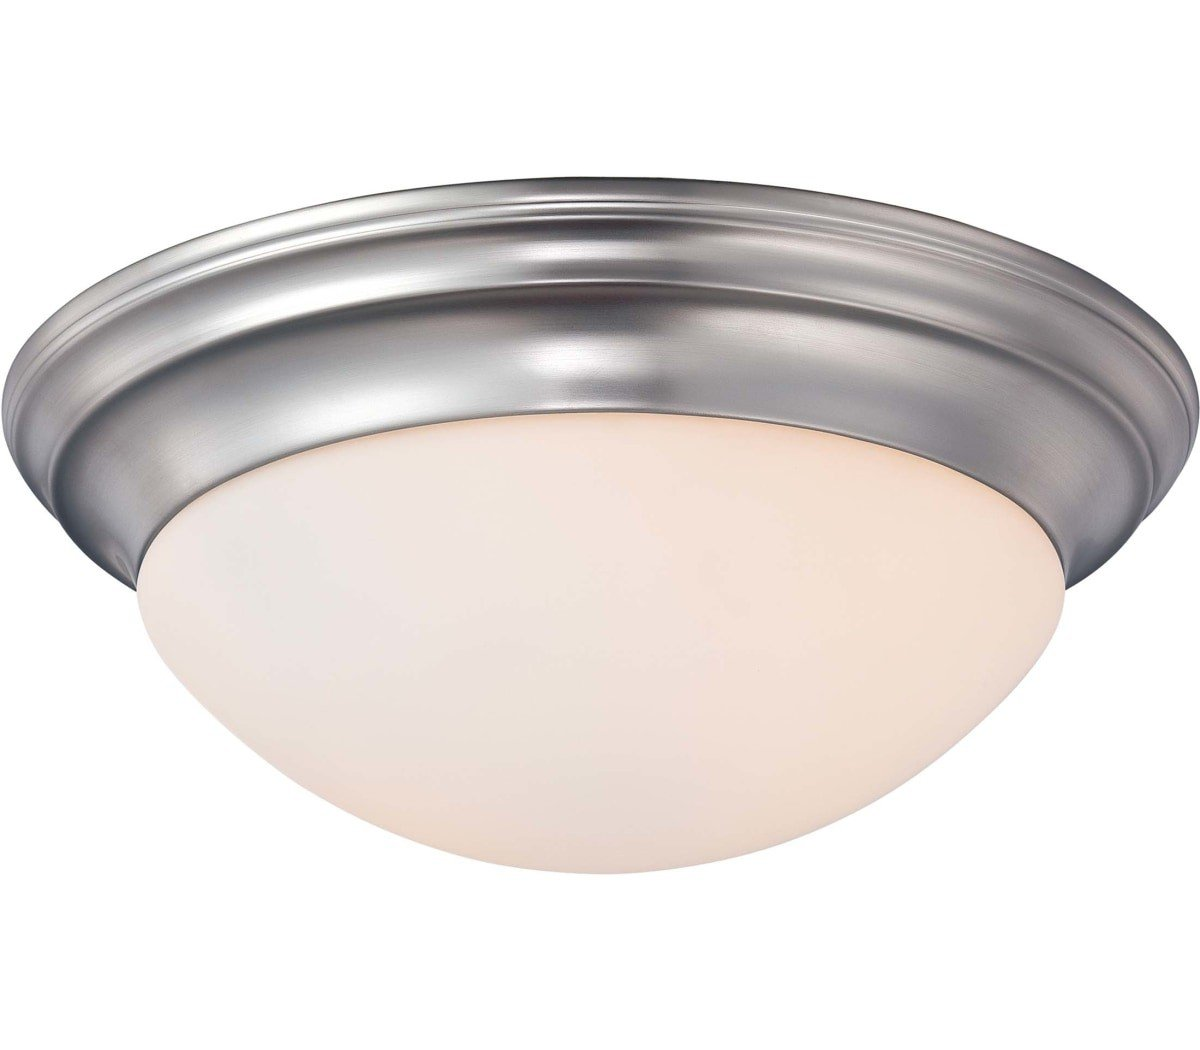 quoizel lighting summit quoizel-summit-flush